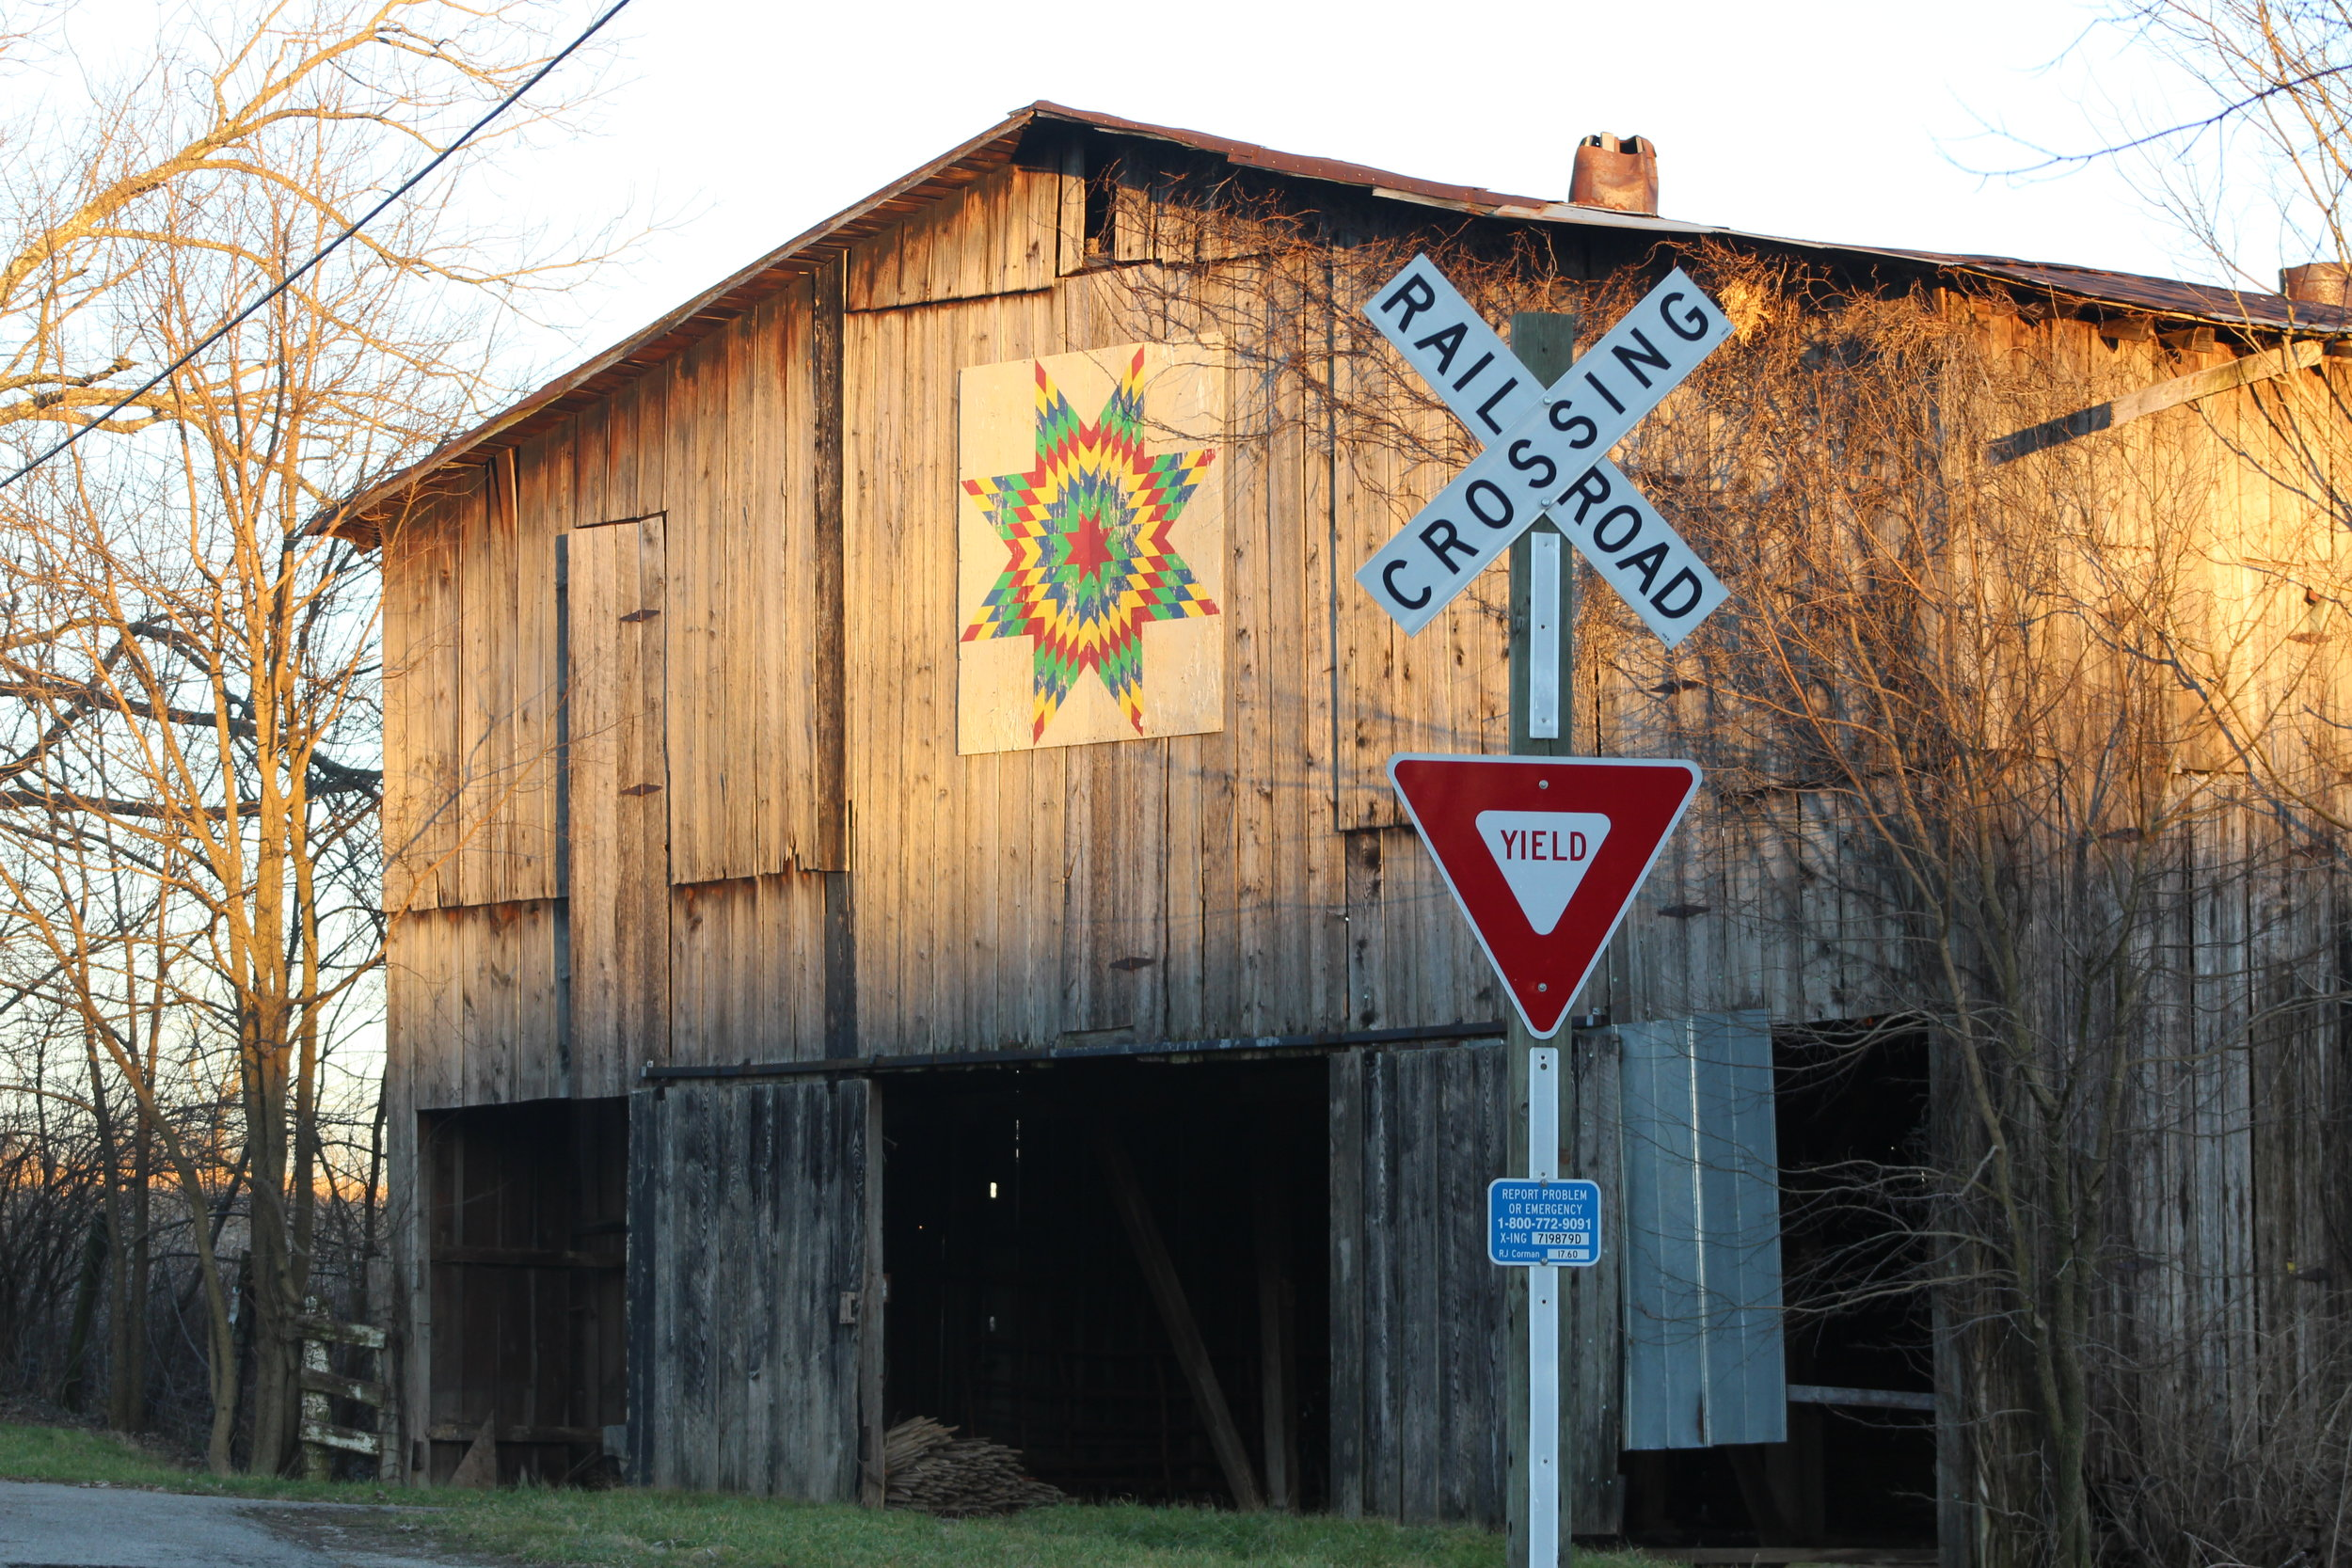 Barn, featuring a Kentucky quilt, opposite the chicken house and next to the railway.